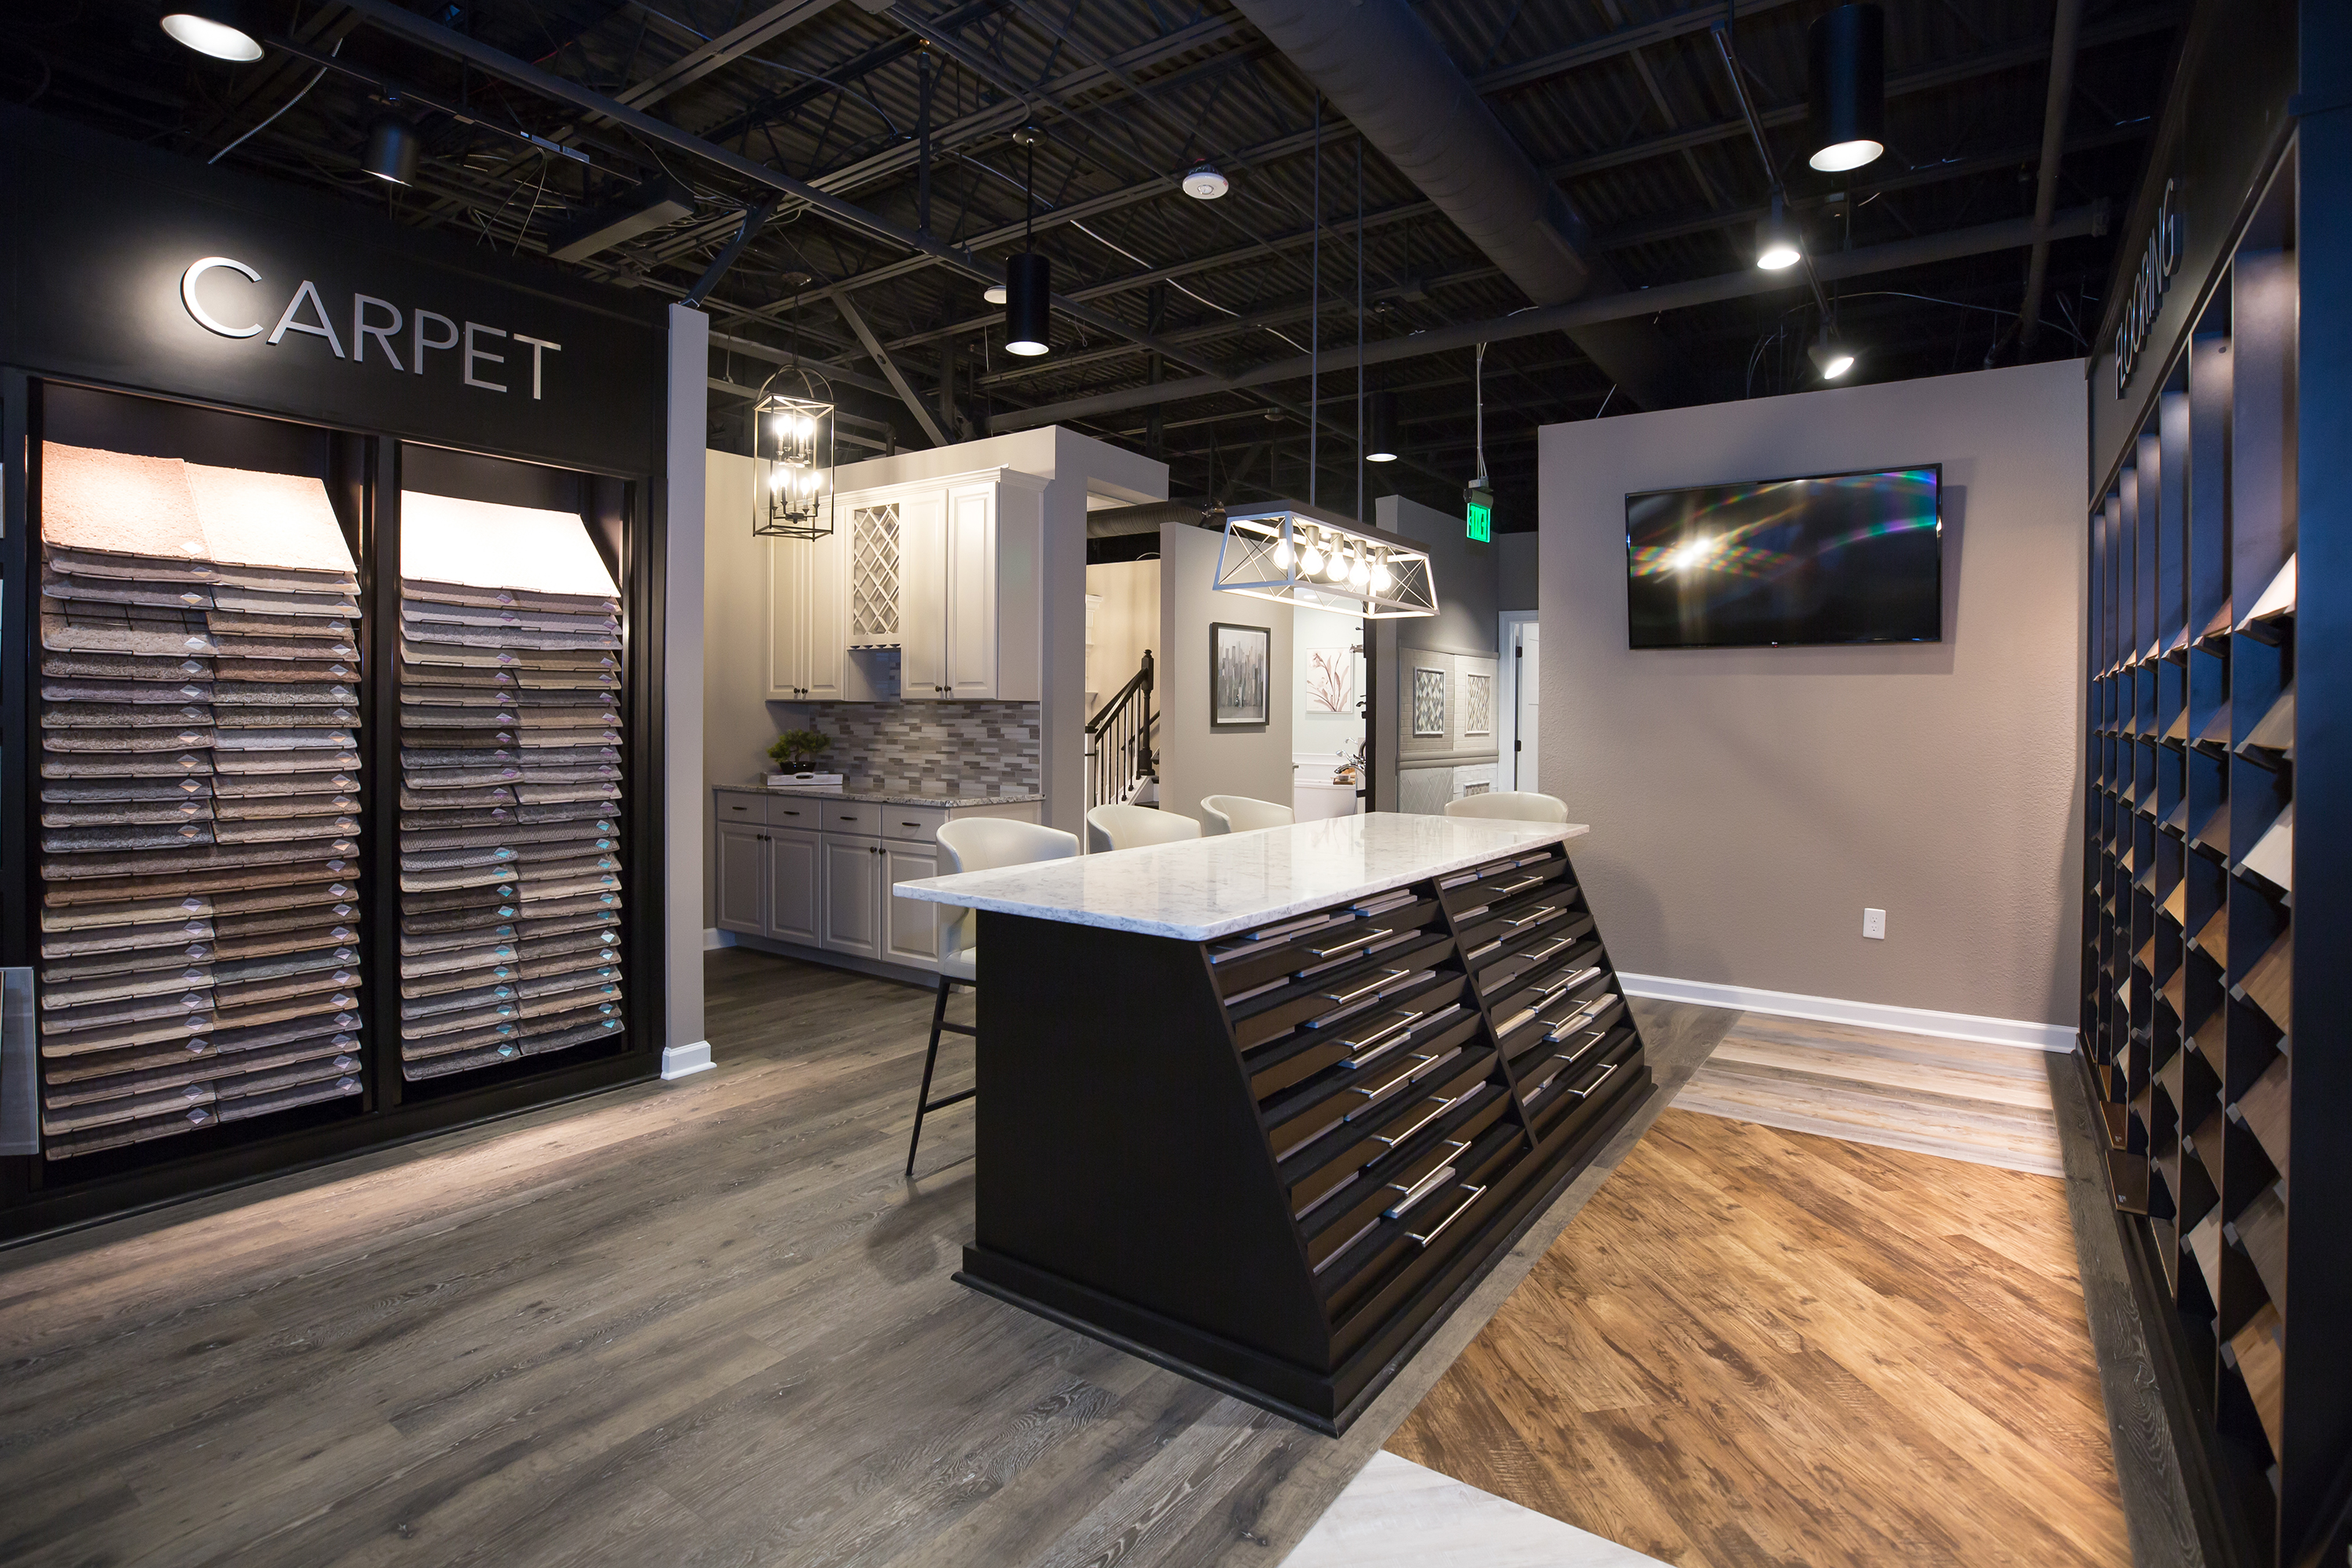 chesapeake kitchen design. The Design Gallery By Chesapeake Homes Is Just Stunning And Has All Your New Home Planning Needs. From Floors, To Light Fixtures, Bathroom/kitchen Kitchen M